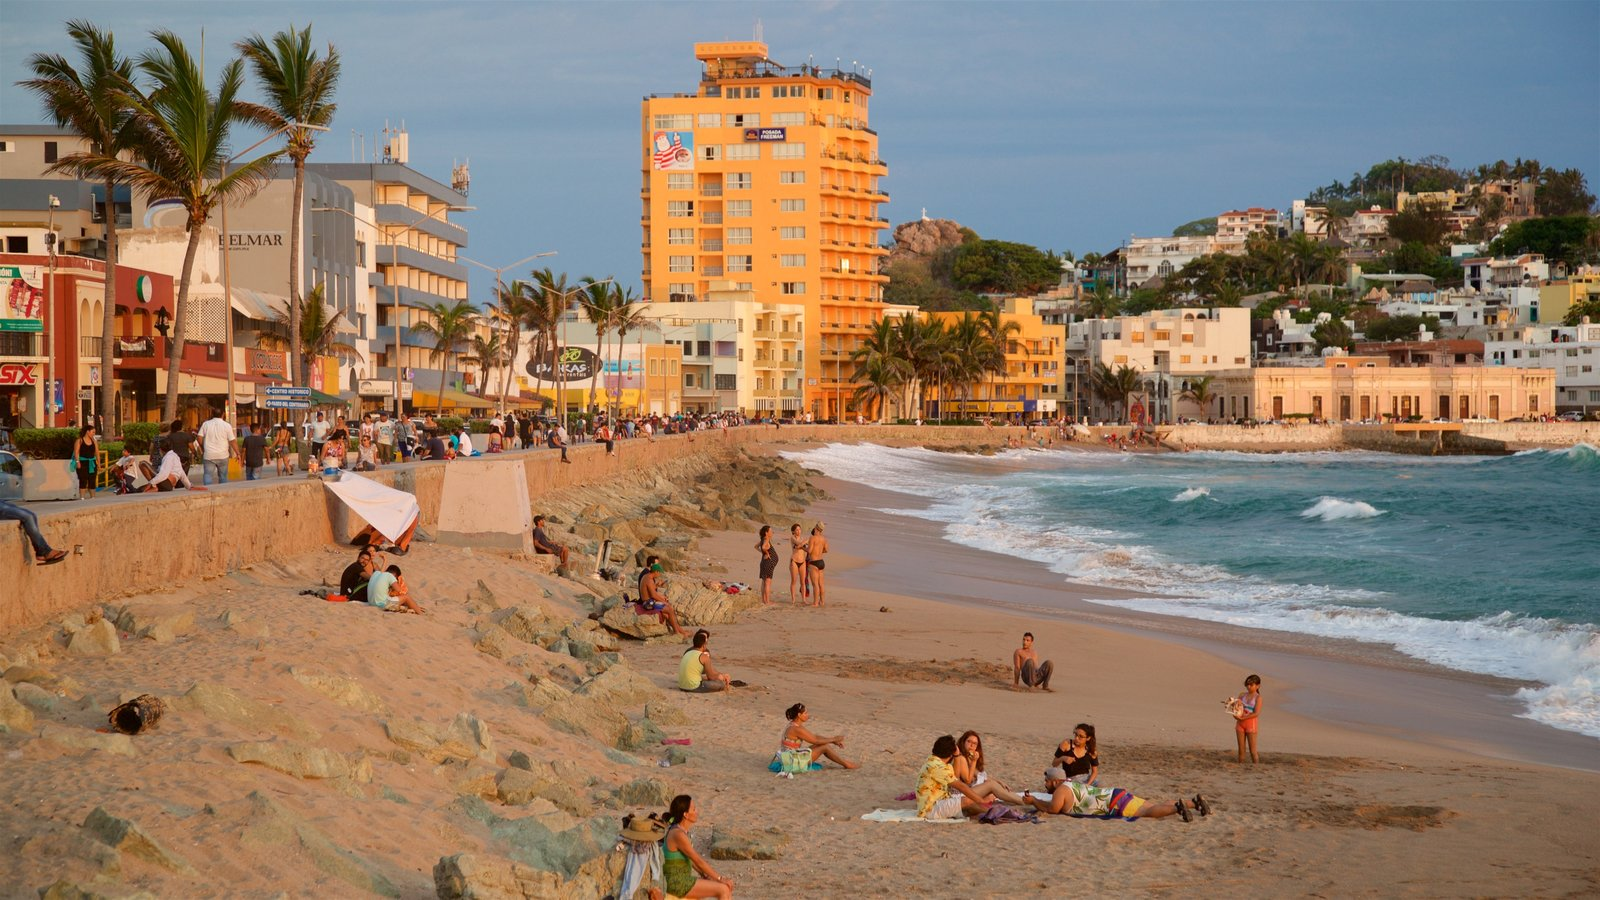 Olas Altas Beach Which Includes General Coastal Views And A